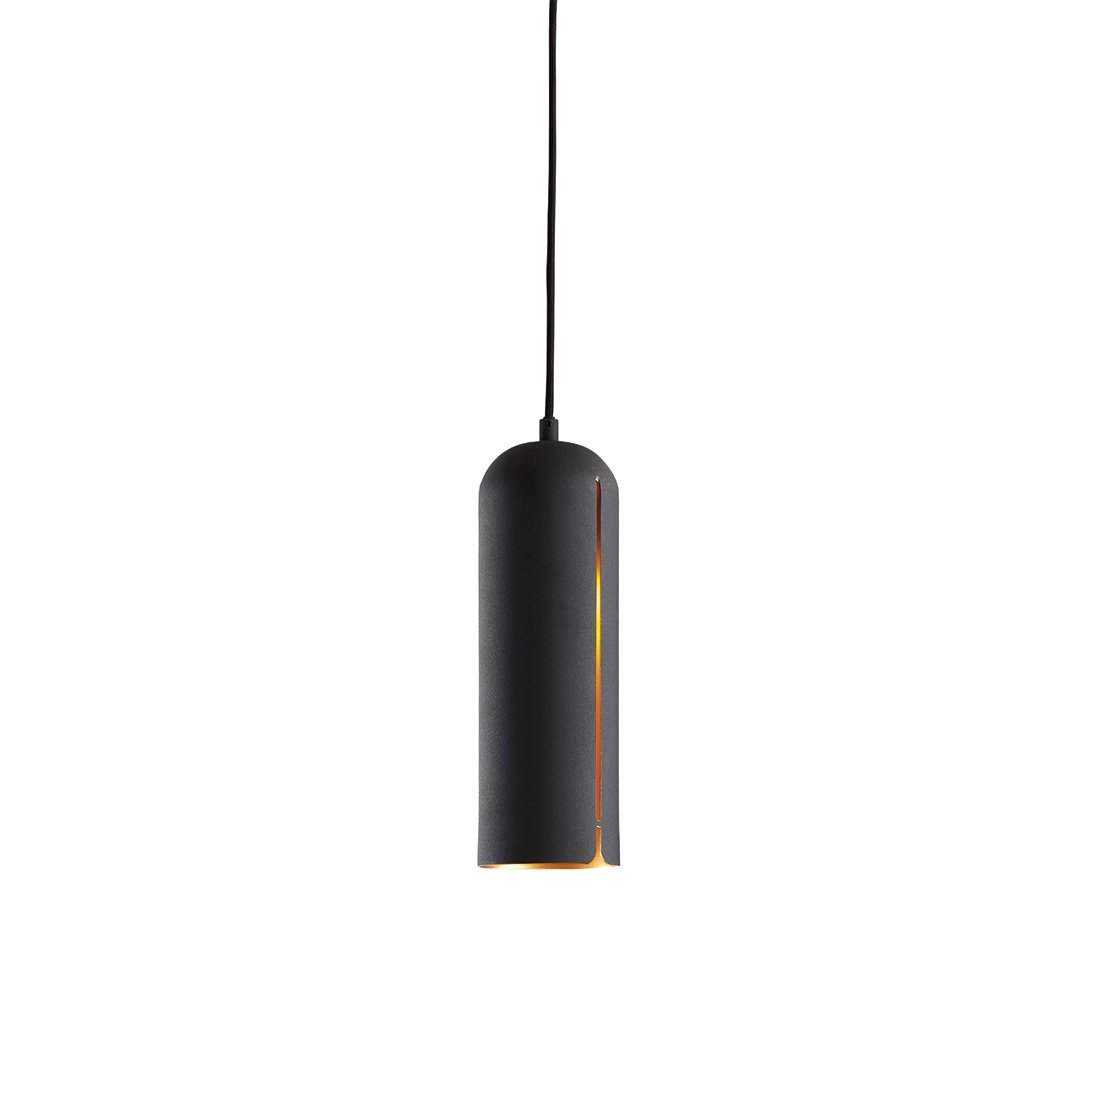 WOUD Gap Tall Hanglamp